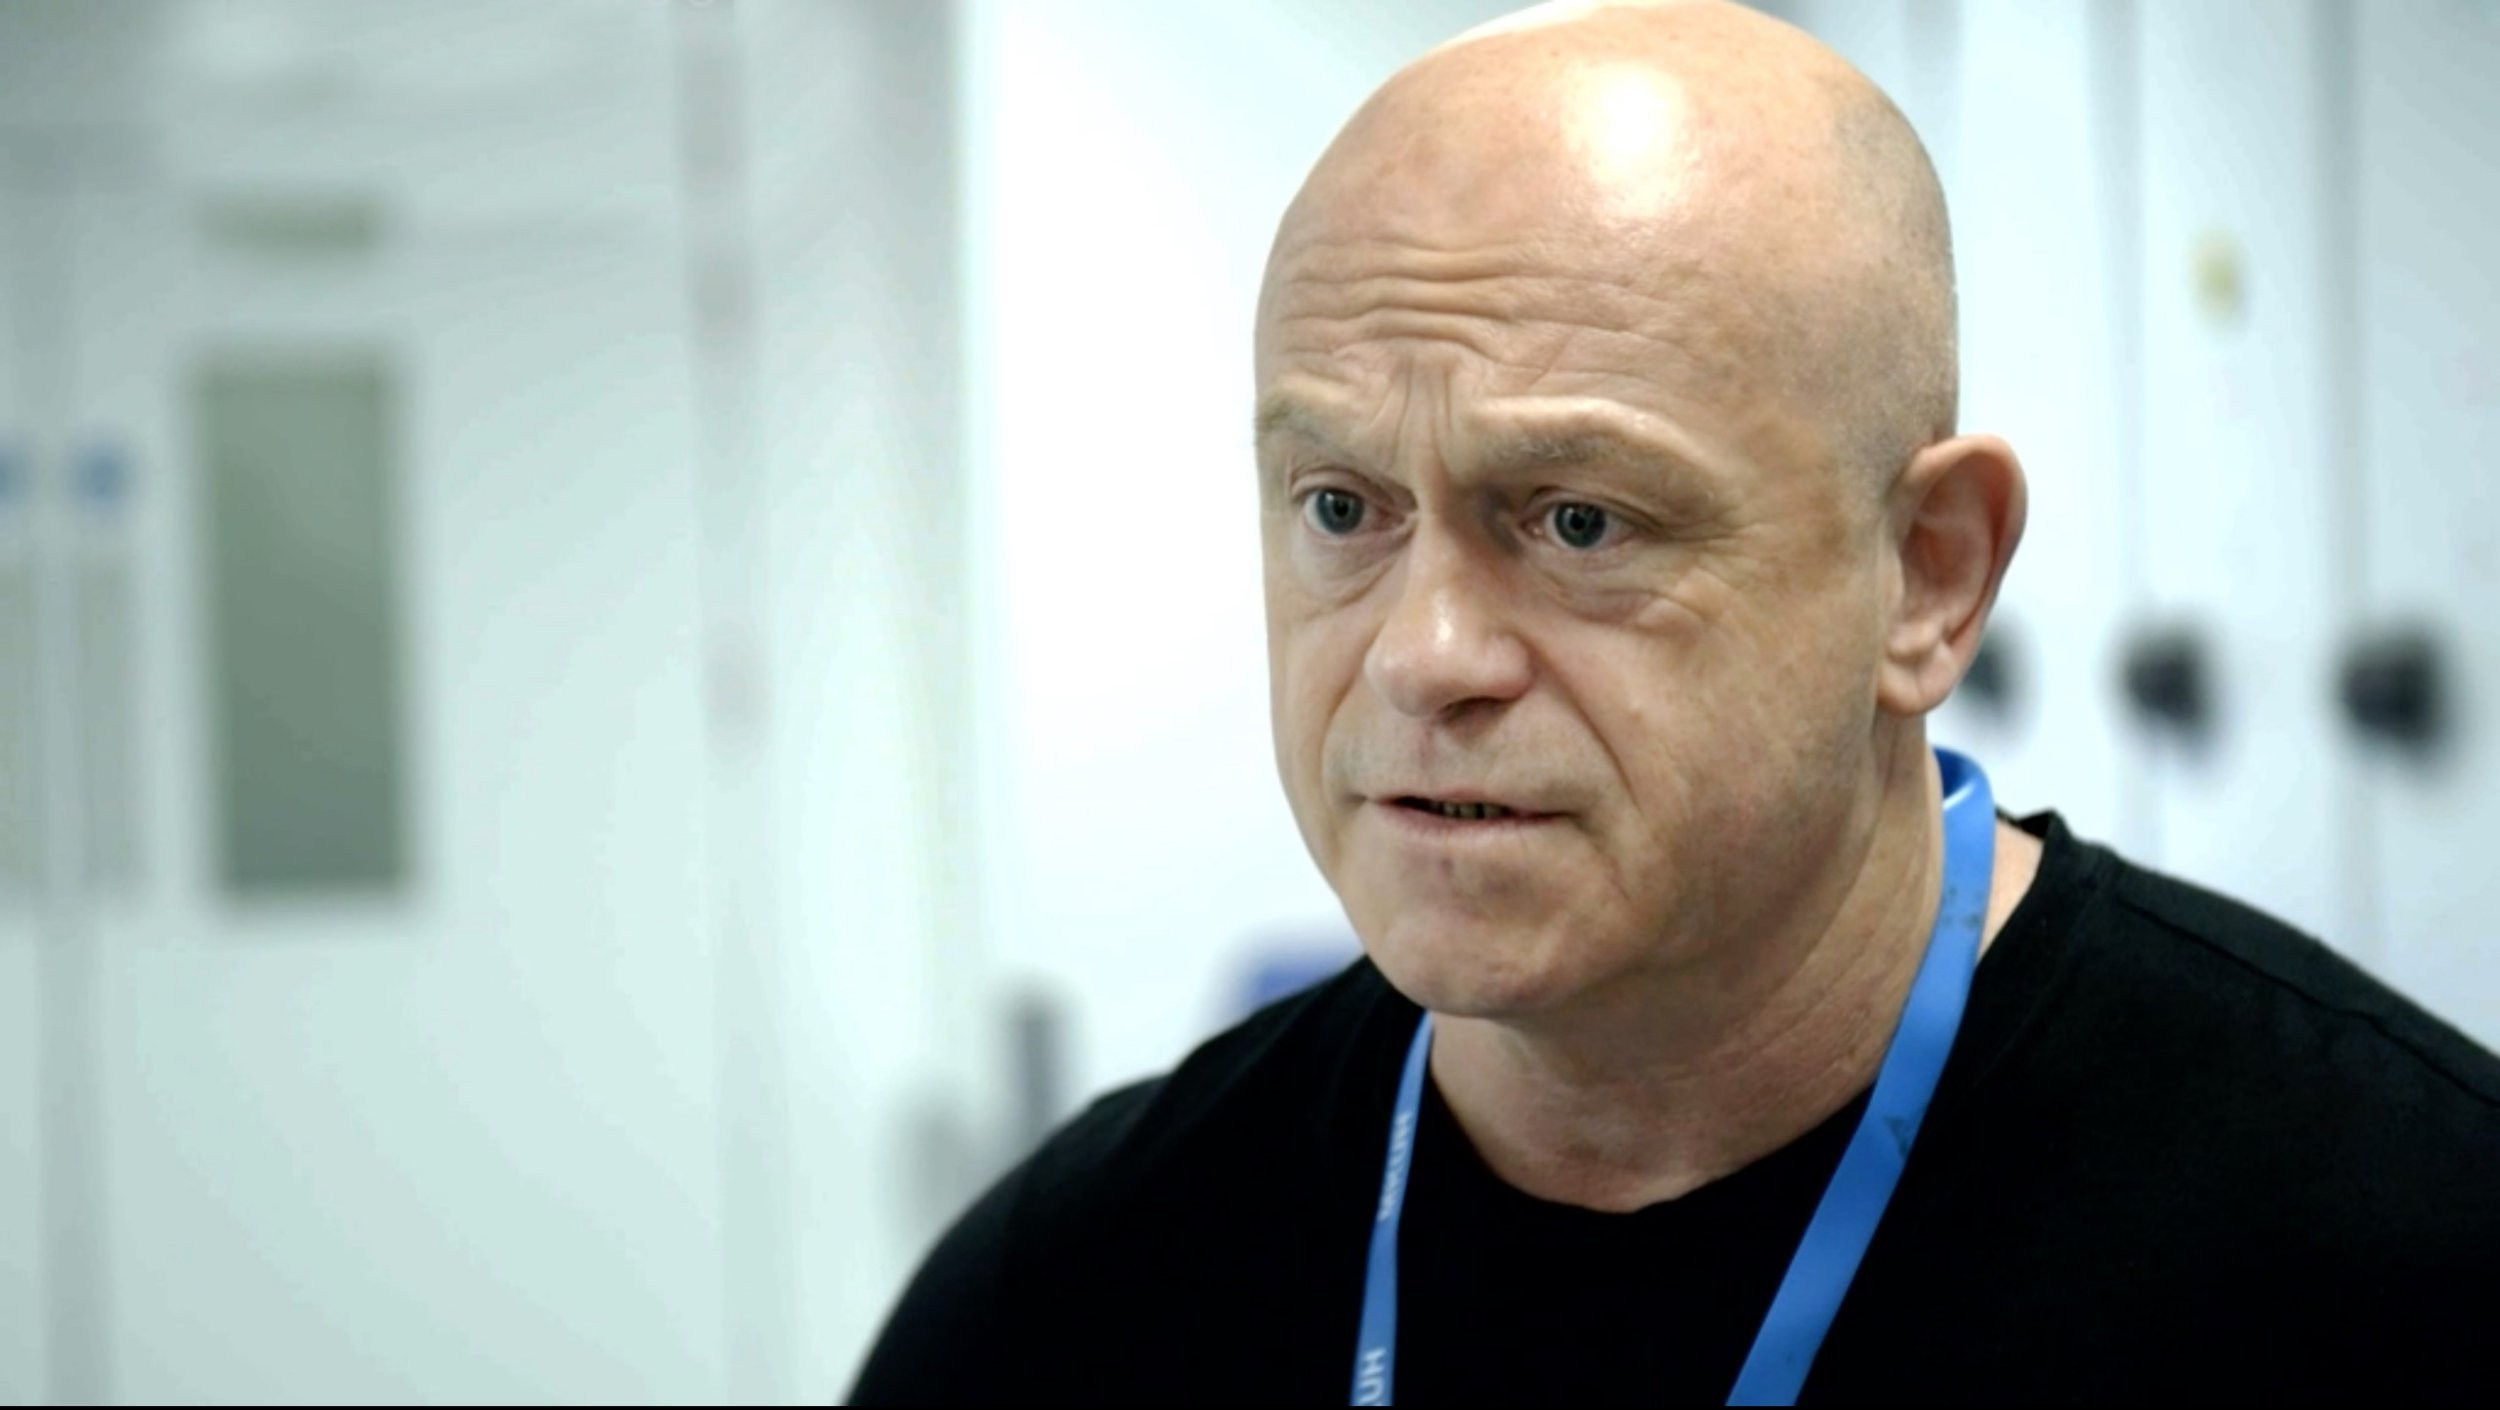 Ross Kemp shares harsh reality of NHS frontline after man dies of coronavirus while filming for documentary